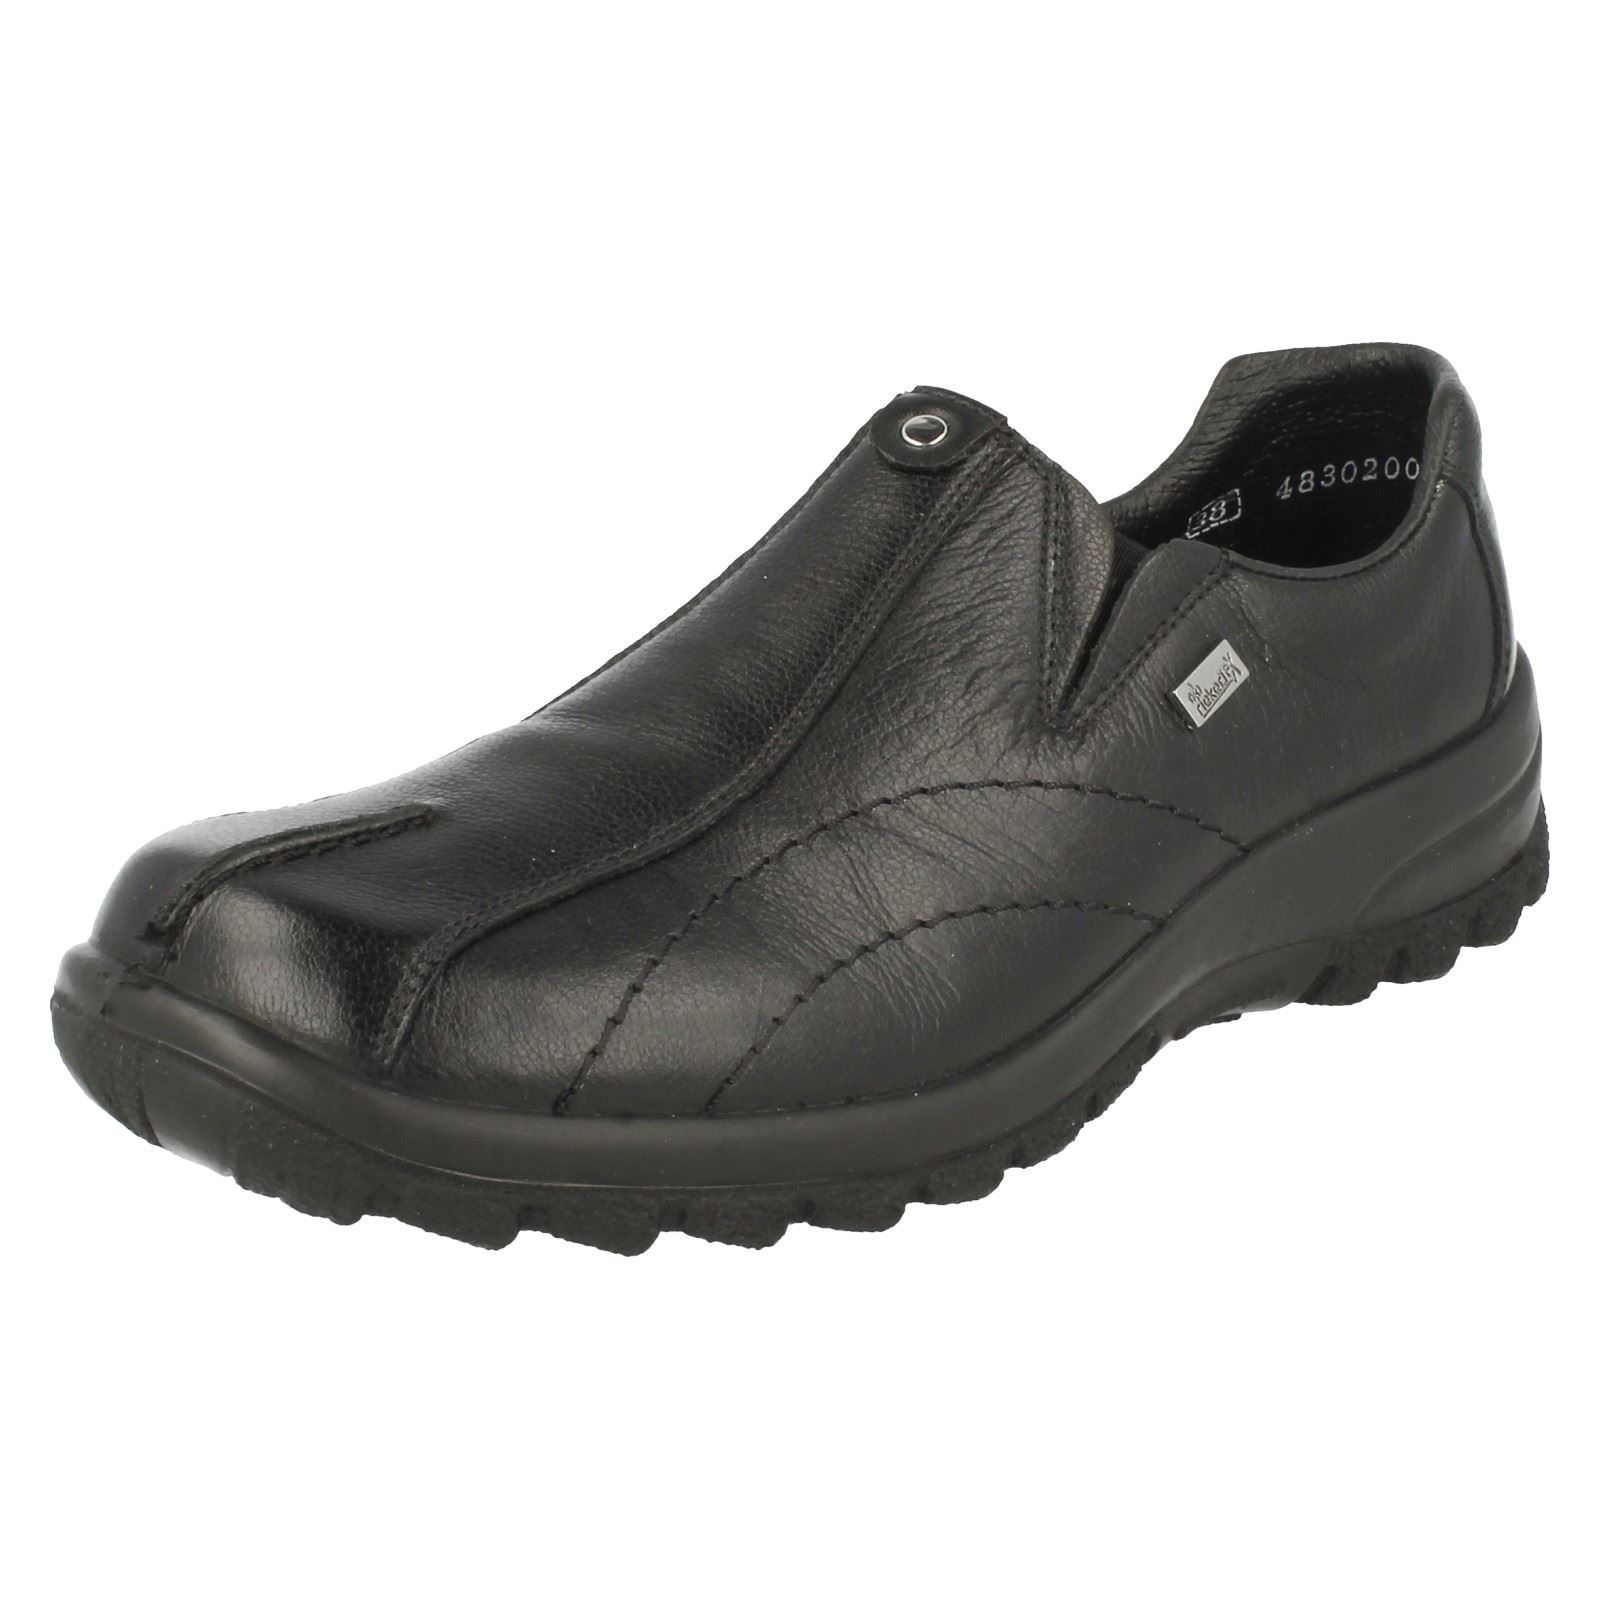 Ladies Rieker Casual Antistress Shoes L7153 Ebay